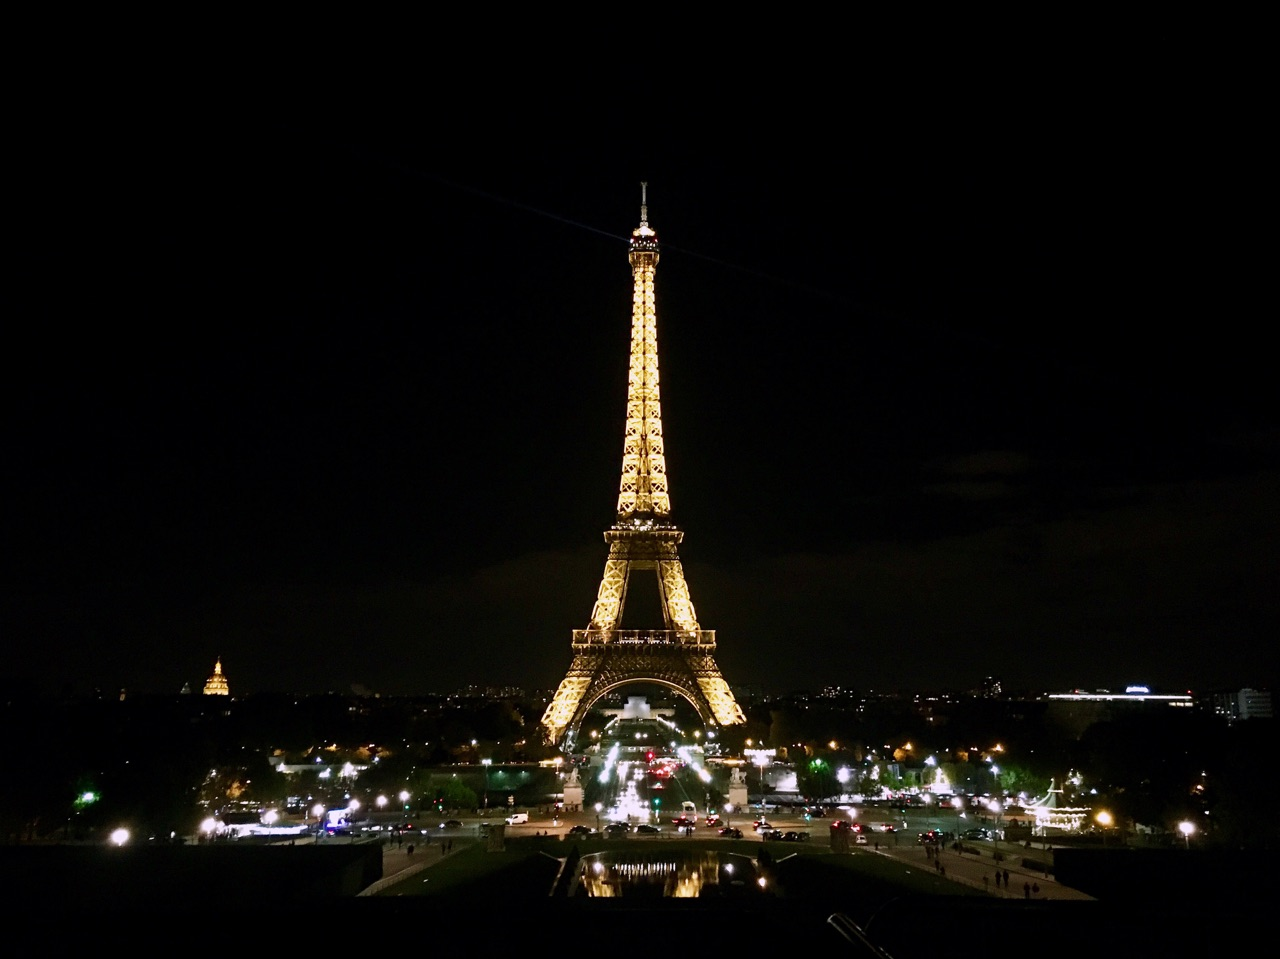 Eiffel Tower at Night, from Trocadero, Paris